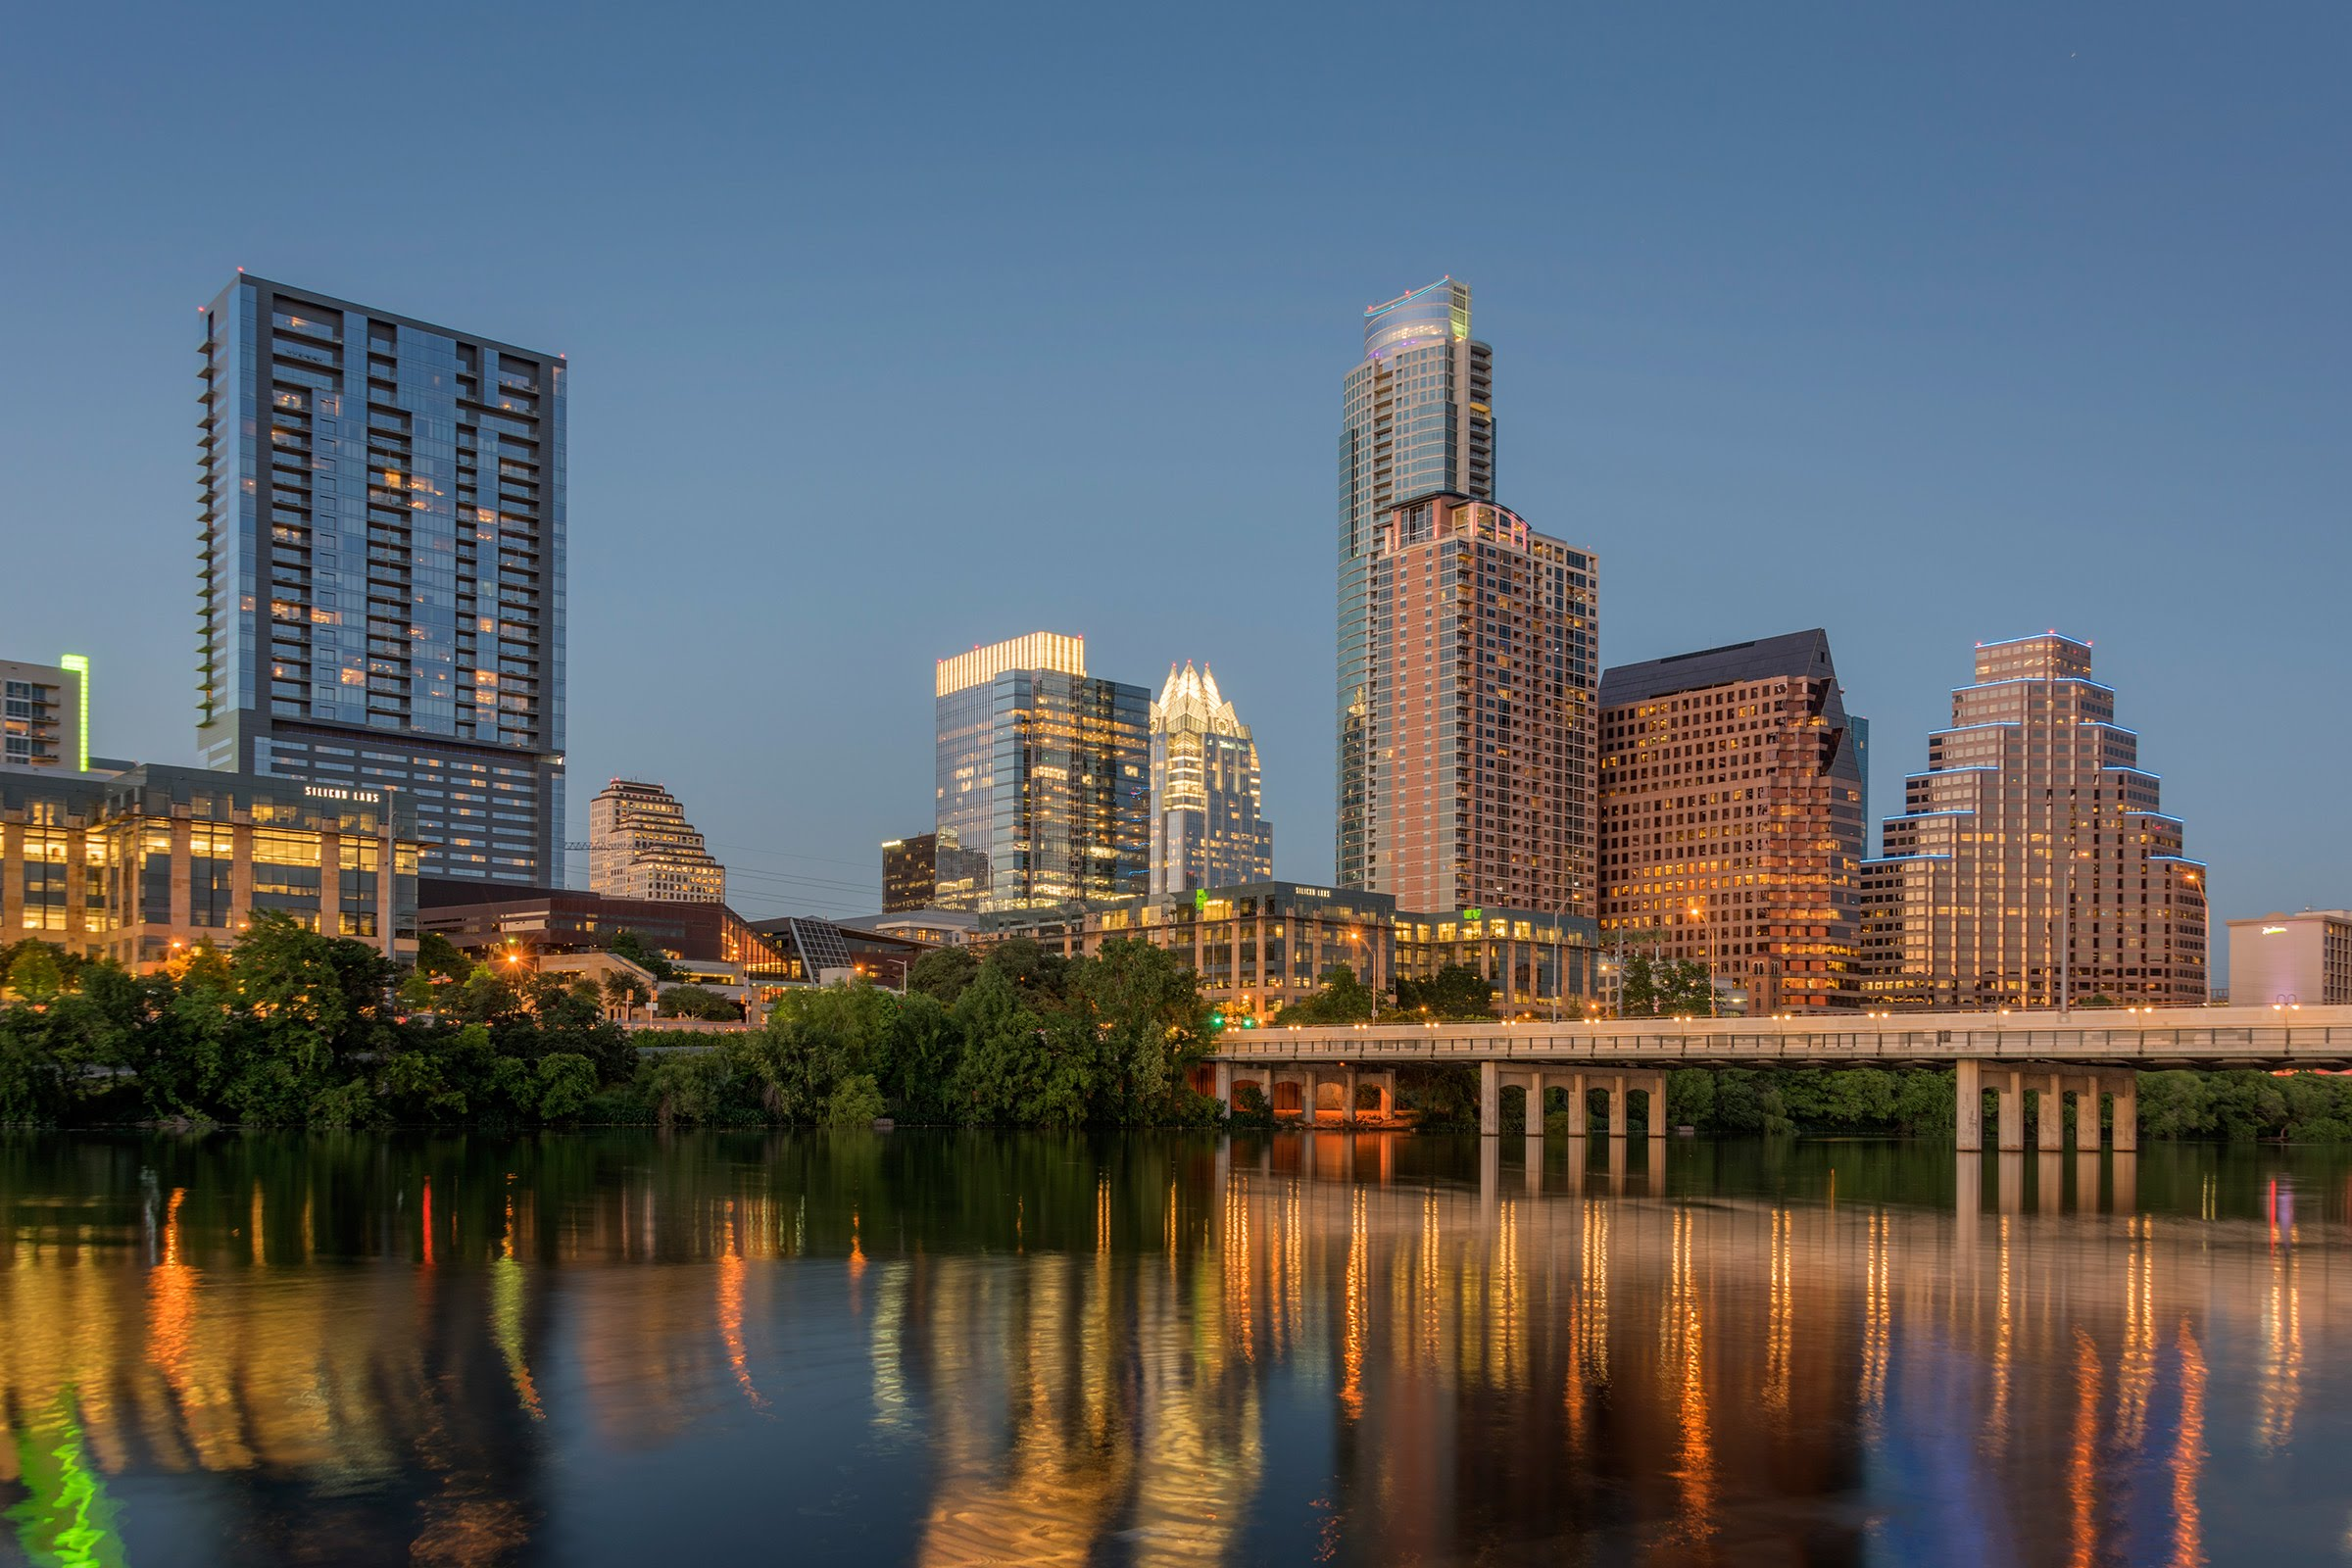 Austin, TX skyline at dusk